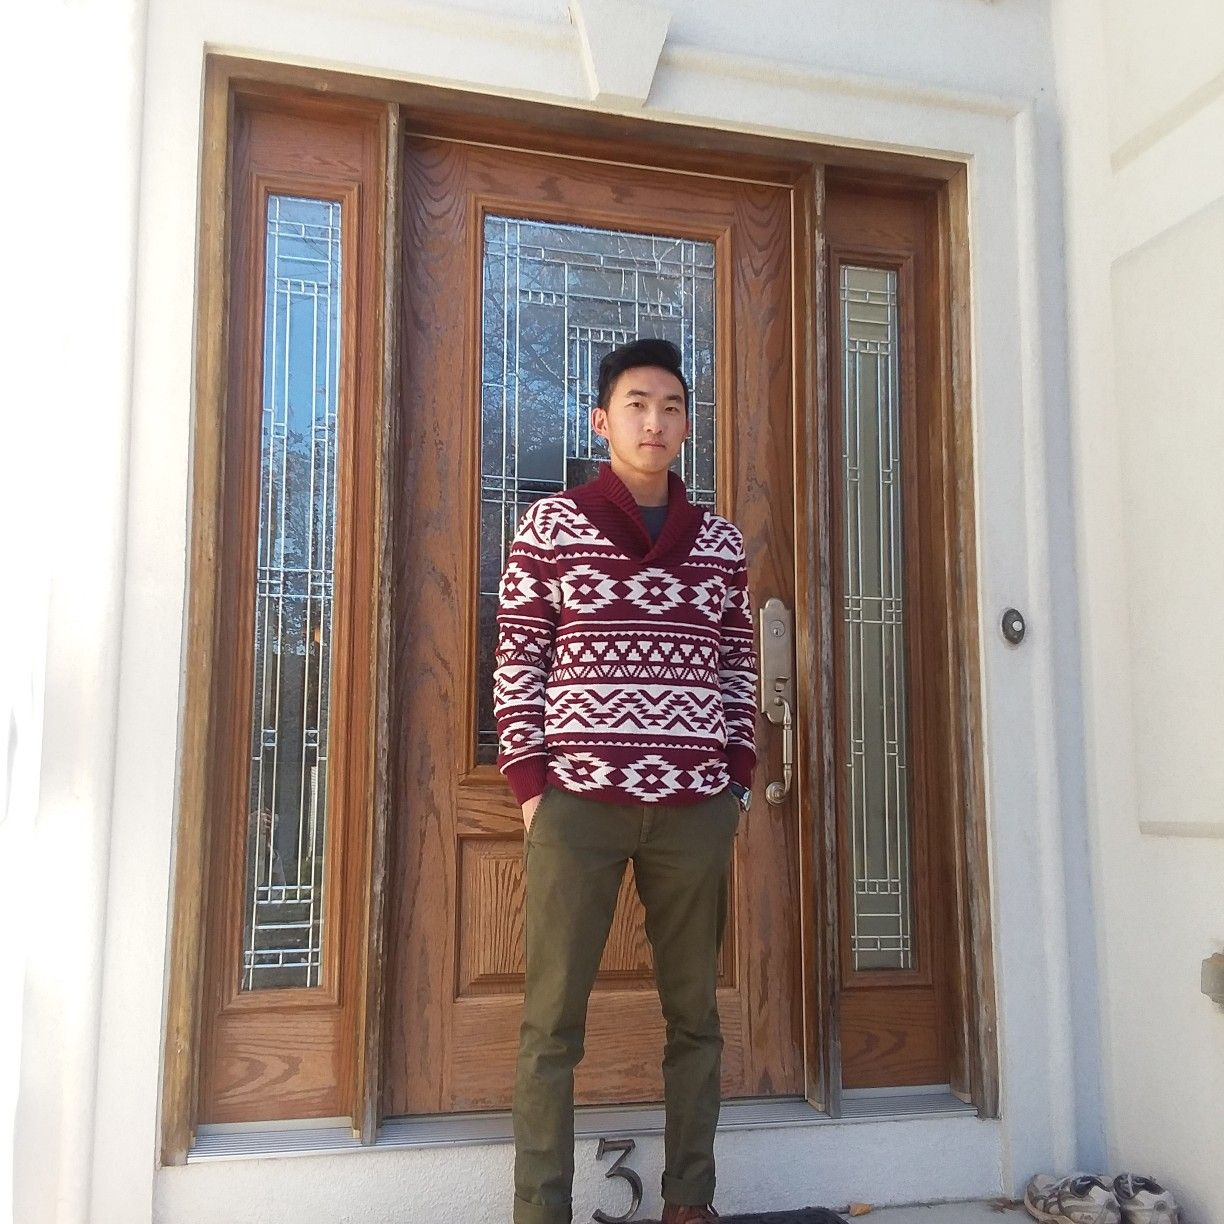 Red and white Christmas sweater green chinos outfit ideas in